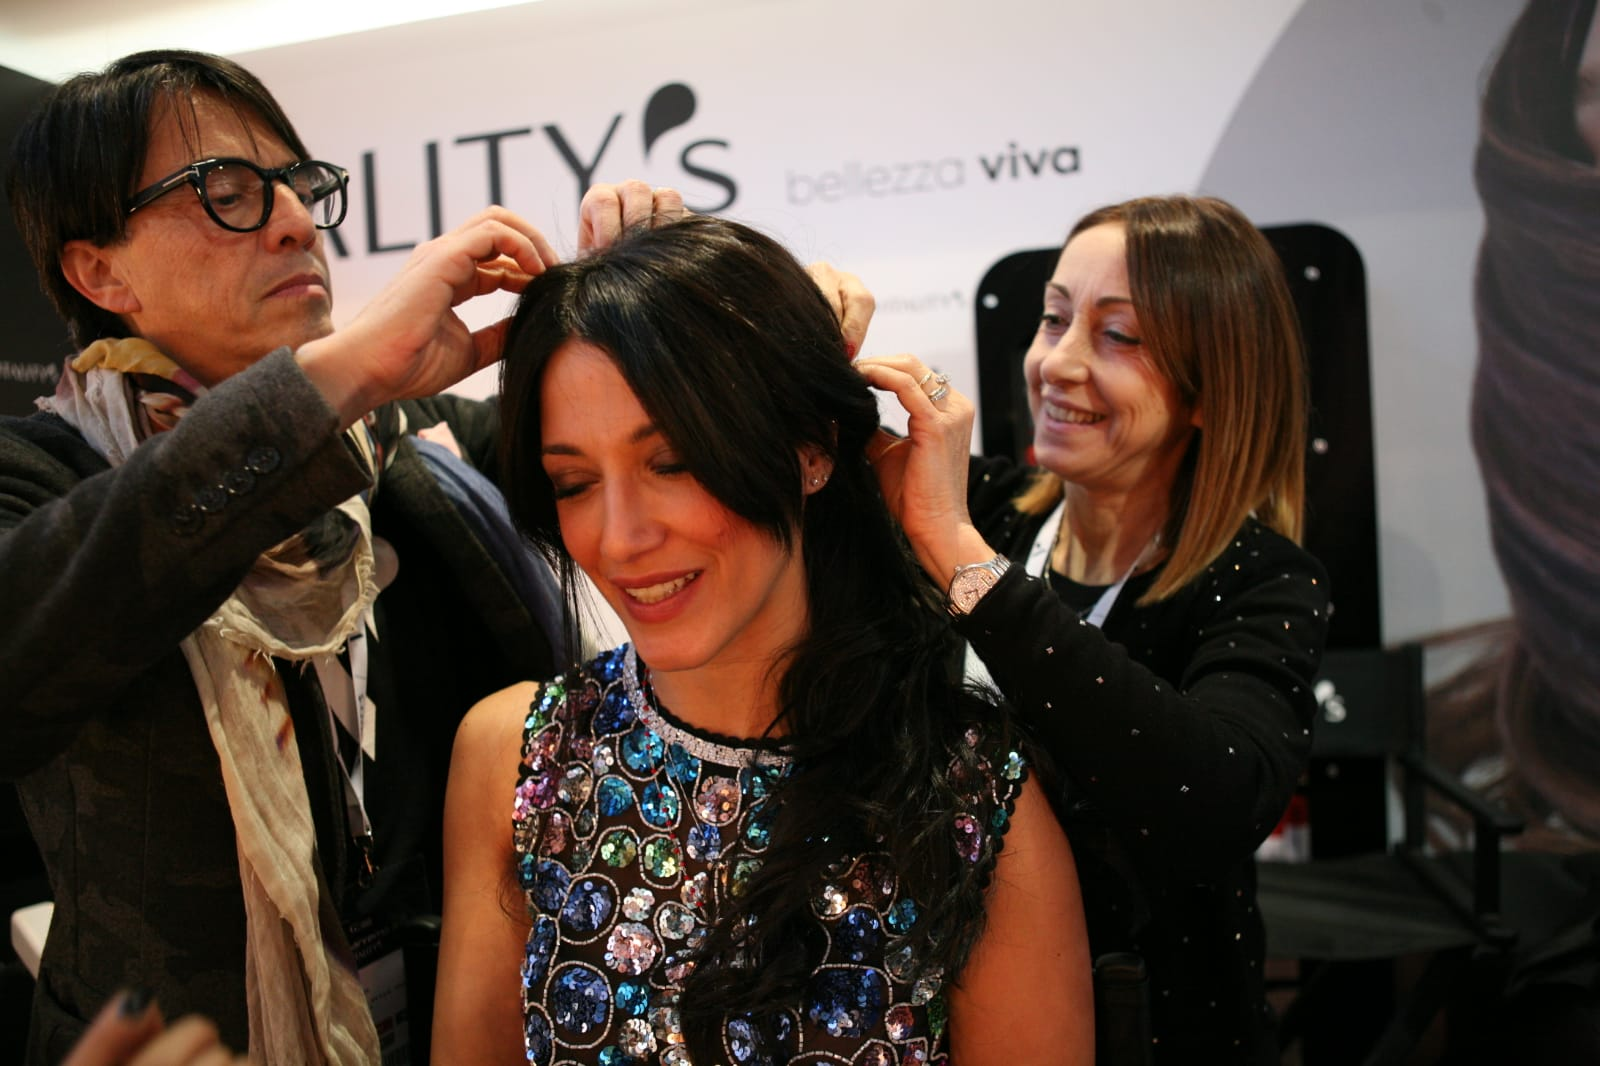 Andrea Rilli e Roberta Mercanti, di Idea Due Hair Styling (31)